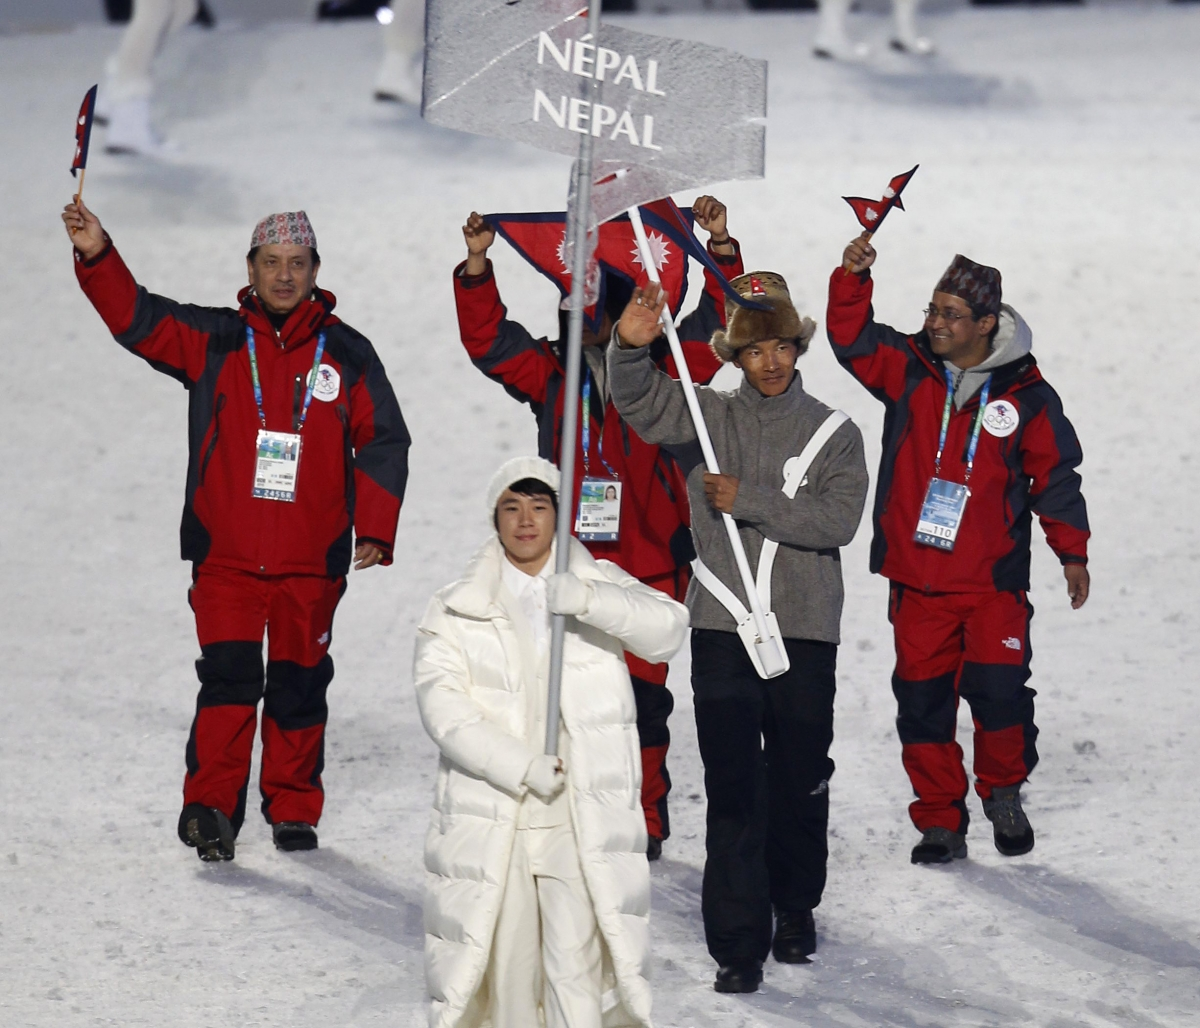 Dachhiri Sherpa of Nepal hopes to improve on his personal best of 92nd position in the cross-country skiing